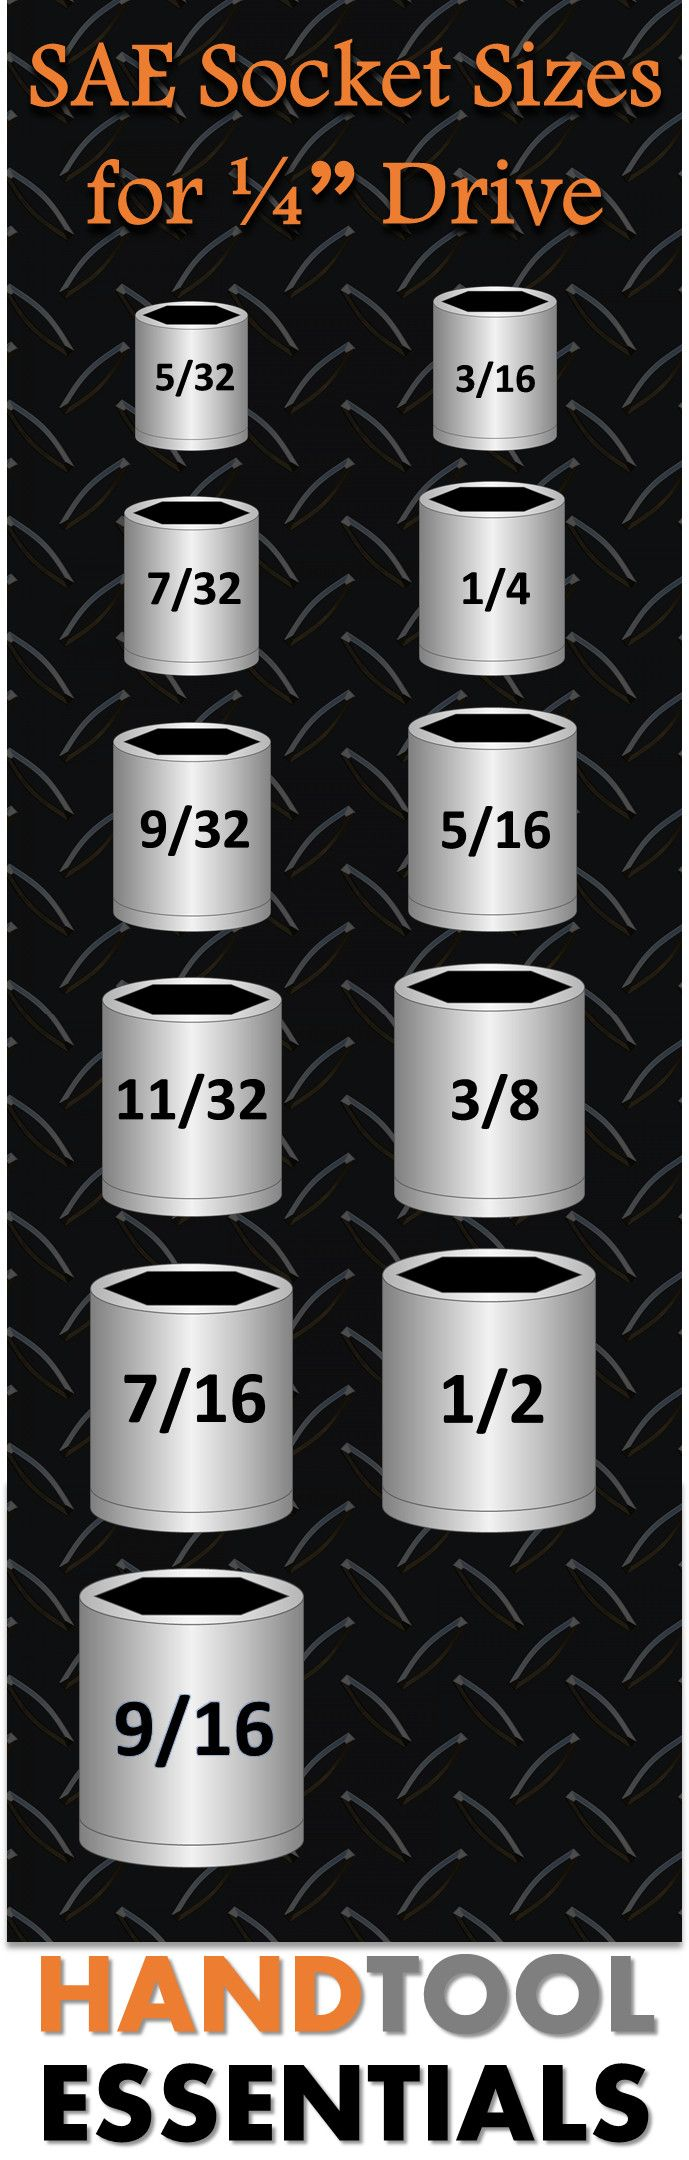 Sae Socket Sizes For 1 4 Drive Chart Imperial Socket Wrenches Wrench Sizes Sockets Socket Wrenches